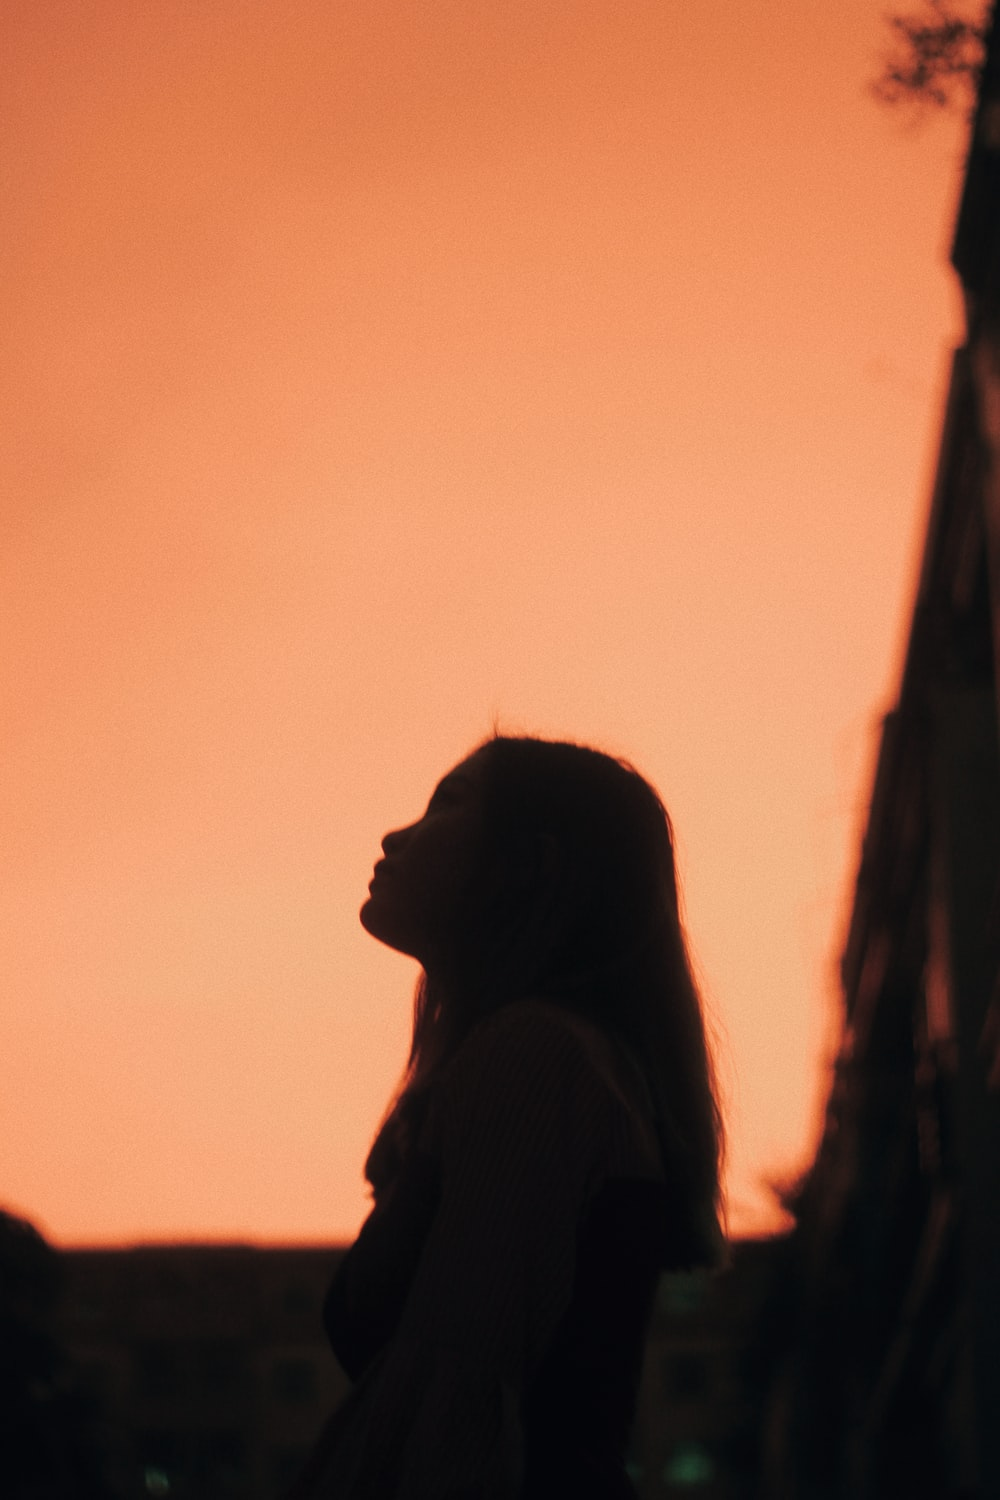 silhouette of woman with head up during golden hour